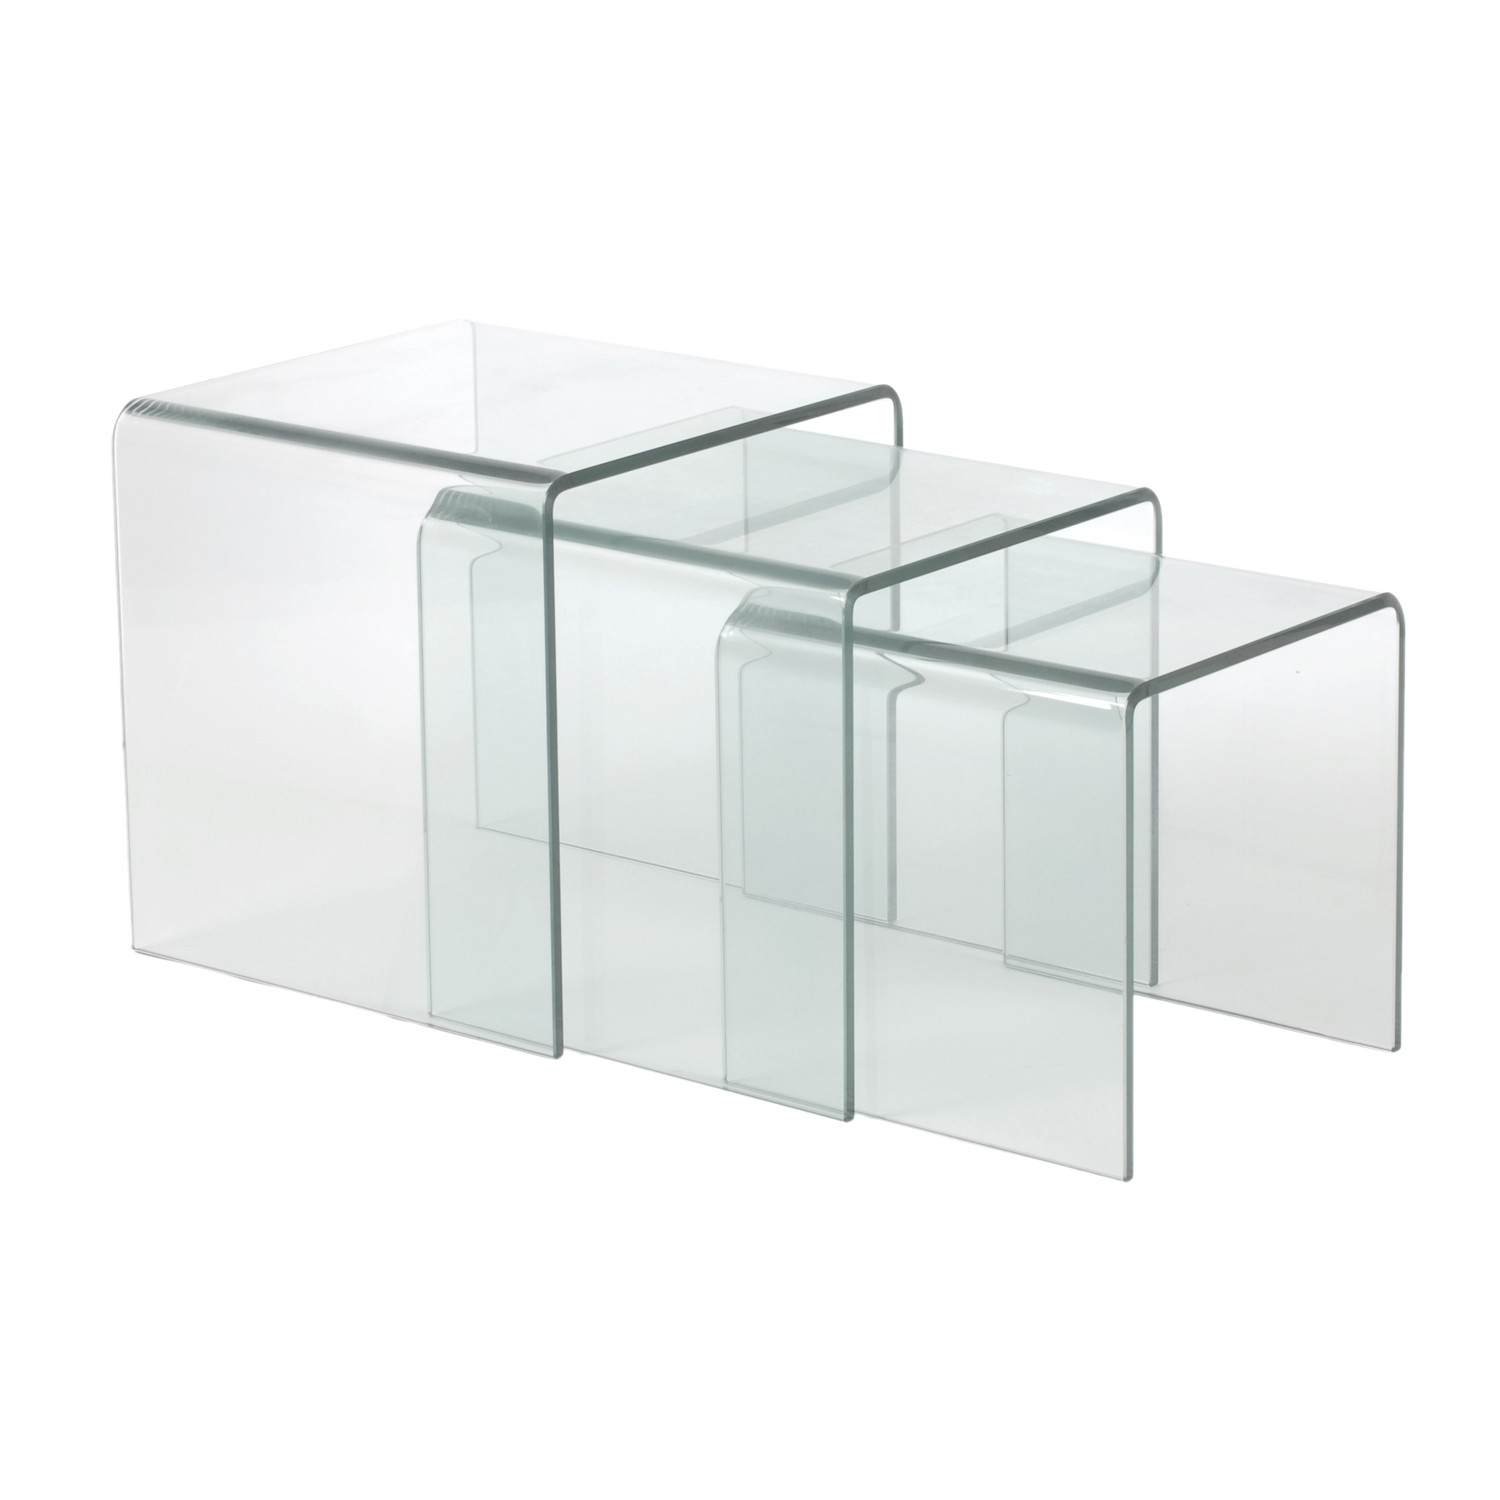 Bent glass nesting tables set of 3 affordably modern touch of bent glass nesting tables set of 3 watchthetrailerfo